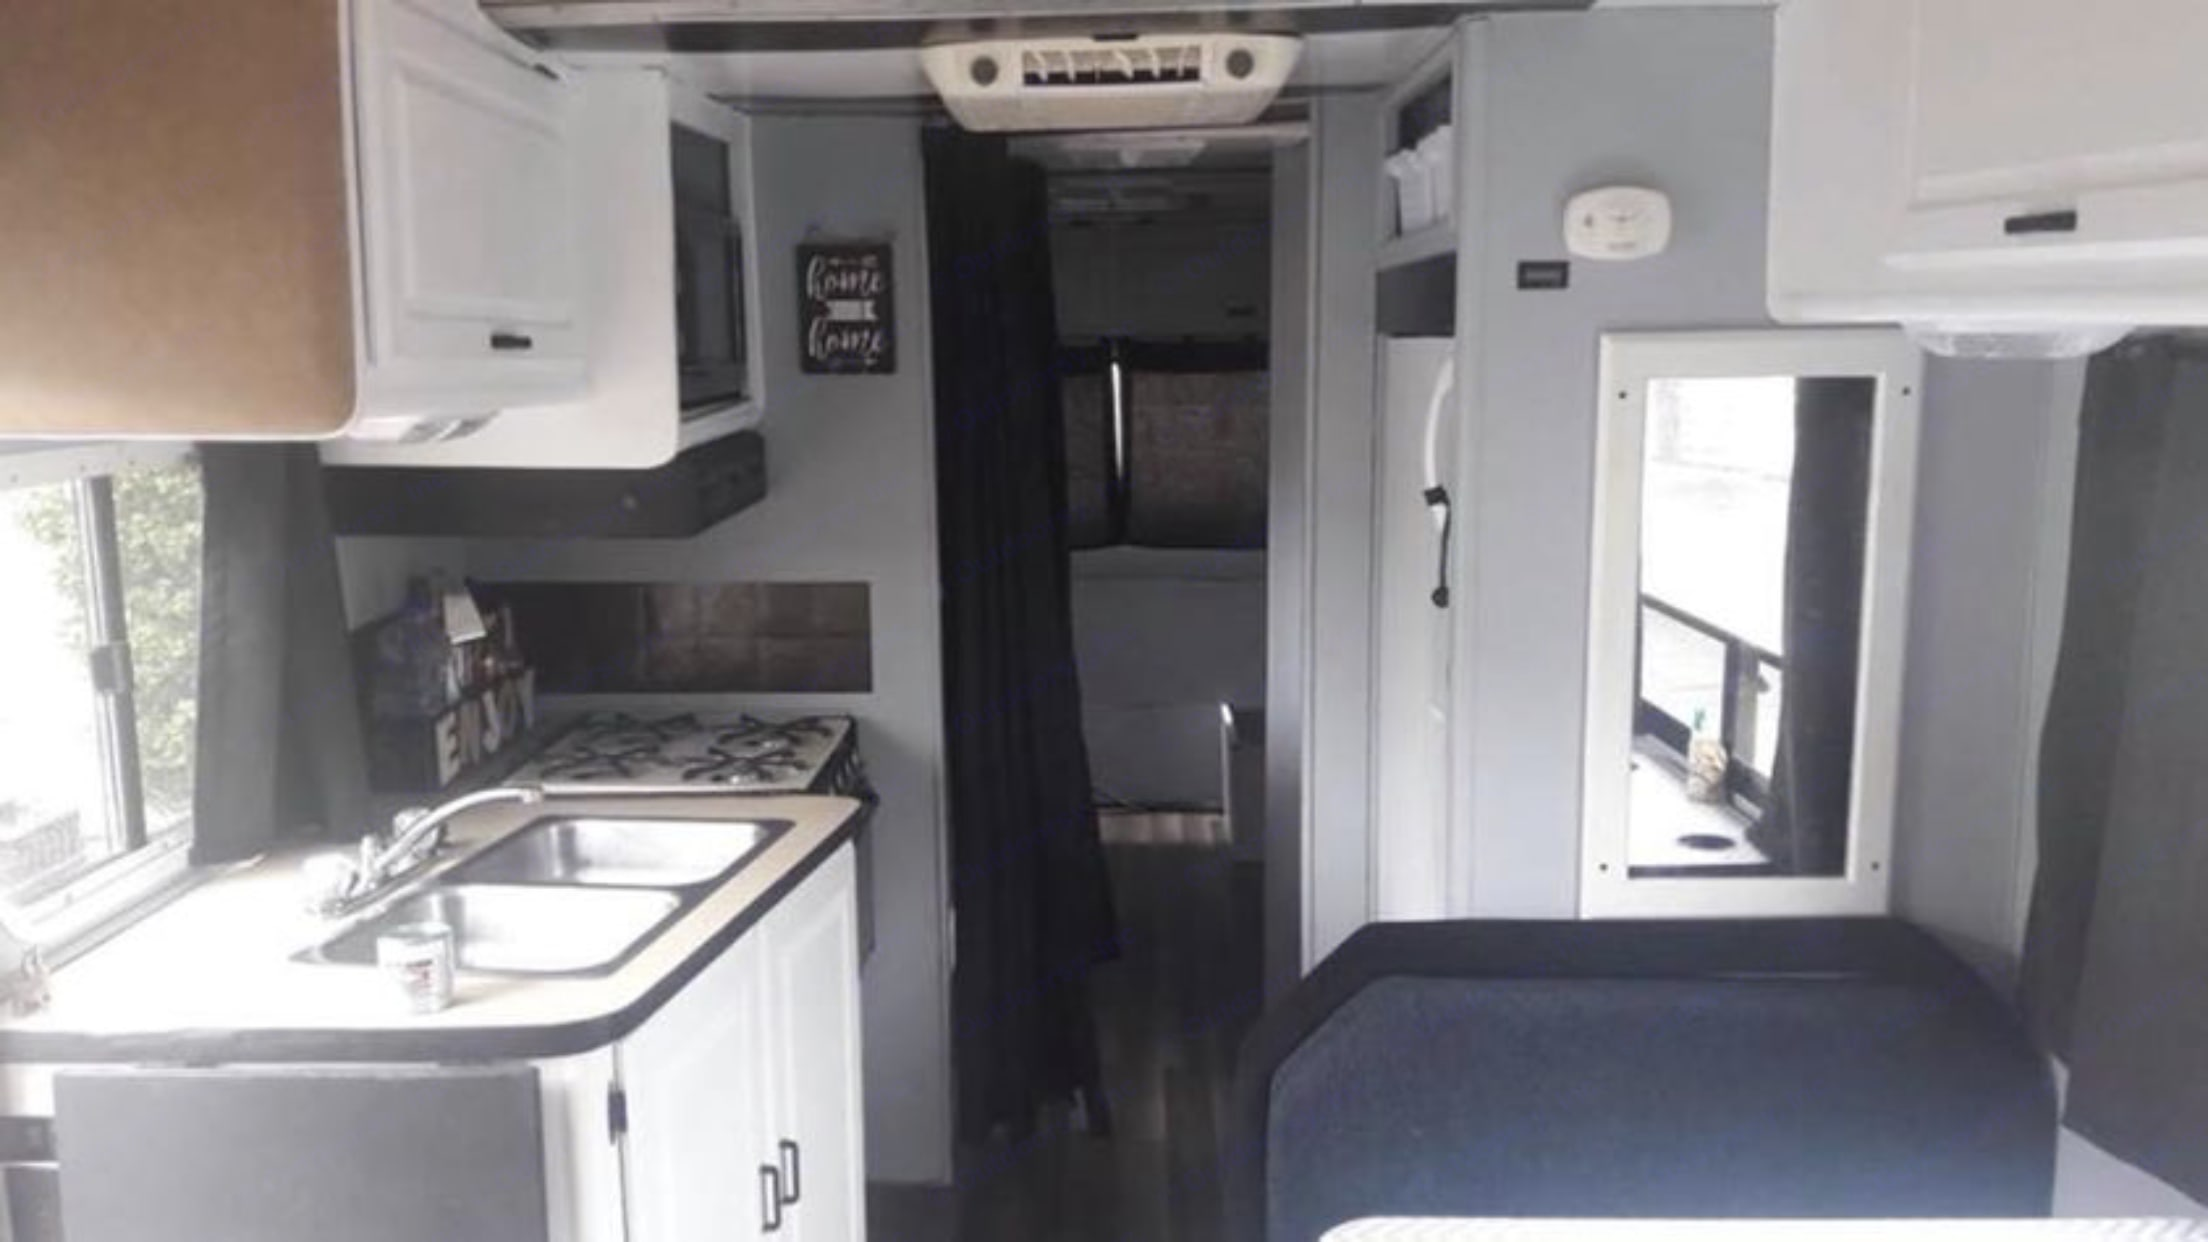 The inside features a sink, microwave, stove/ oven, vent hood, refrigerator and plenty of storage for food, dishes, etc. The hallway leads to the bathroom and then the king size bed with closet space.. Winnebago Minnie Winnie 1988